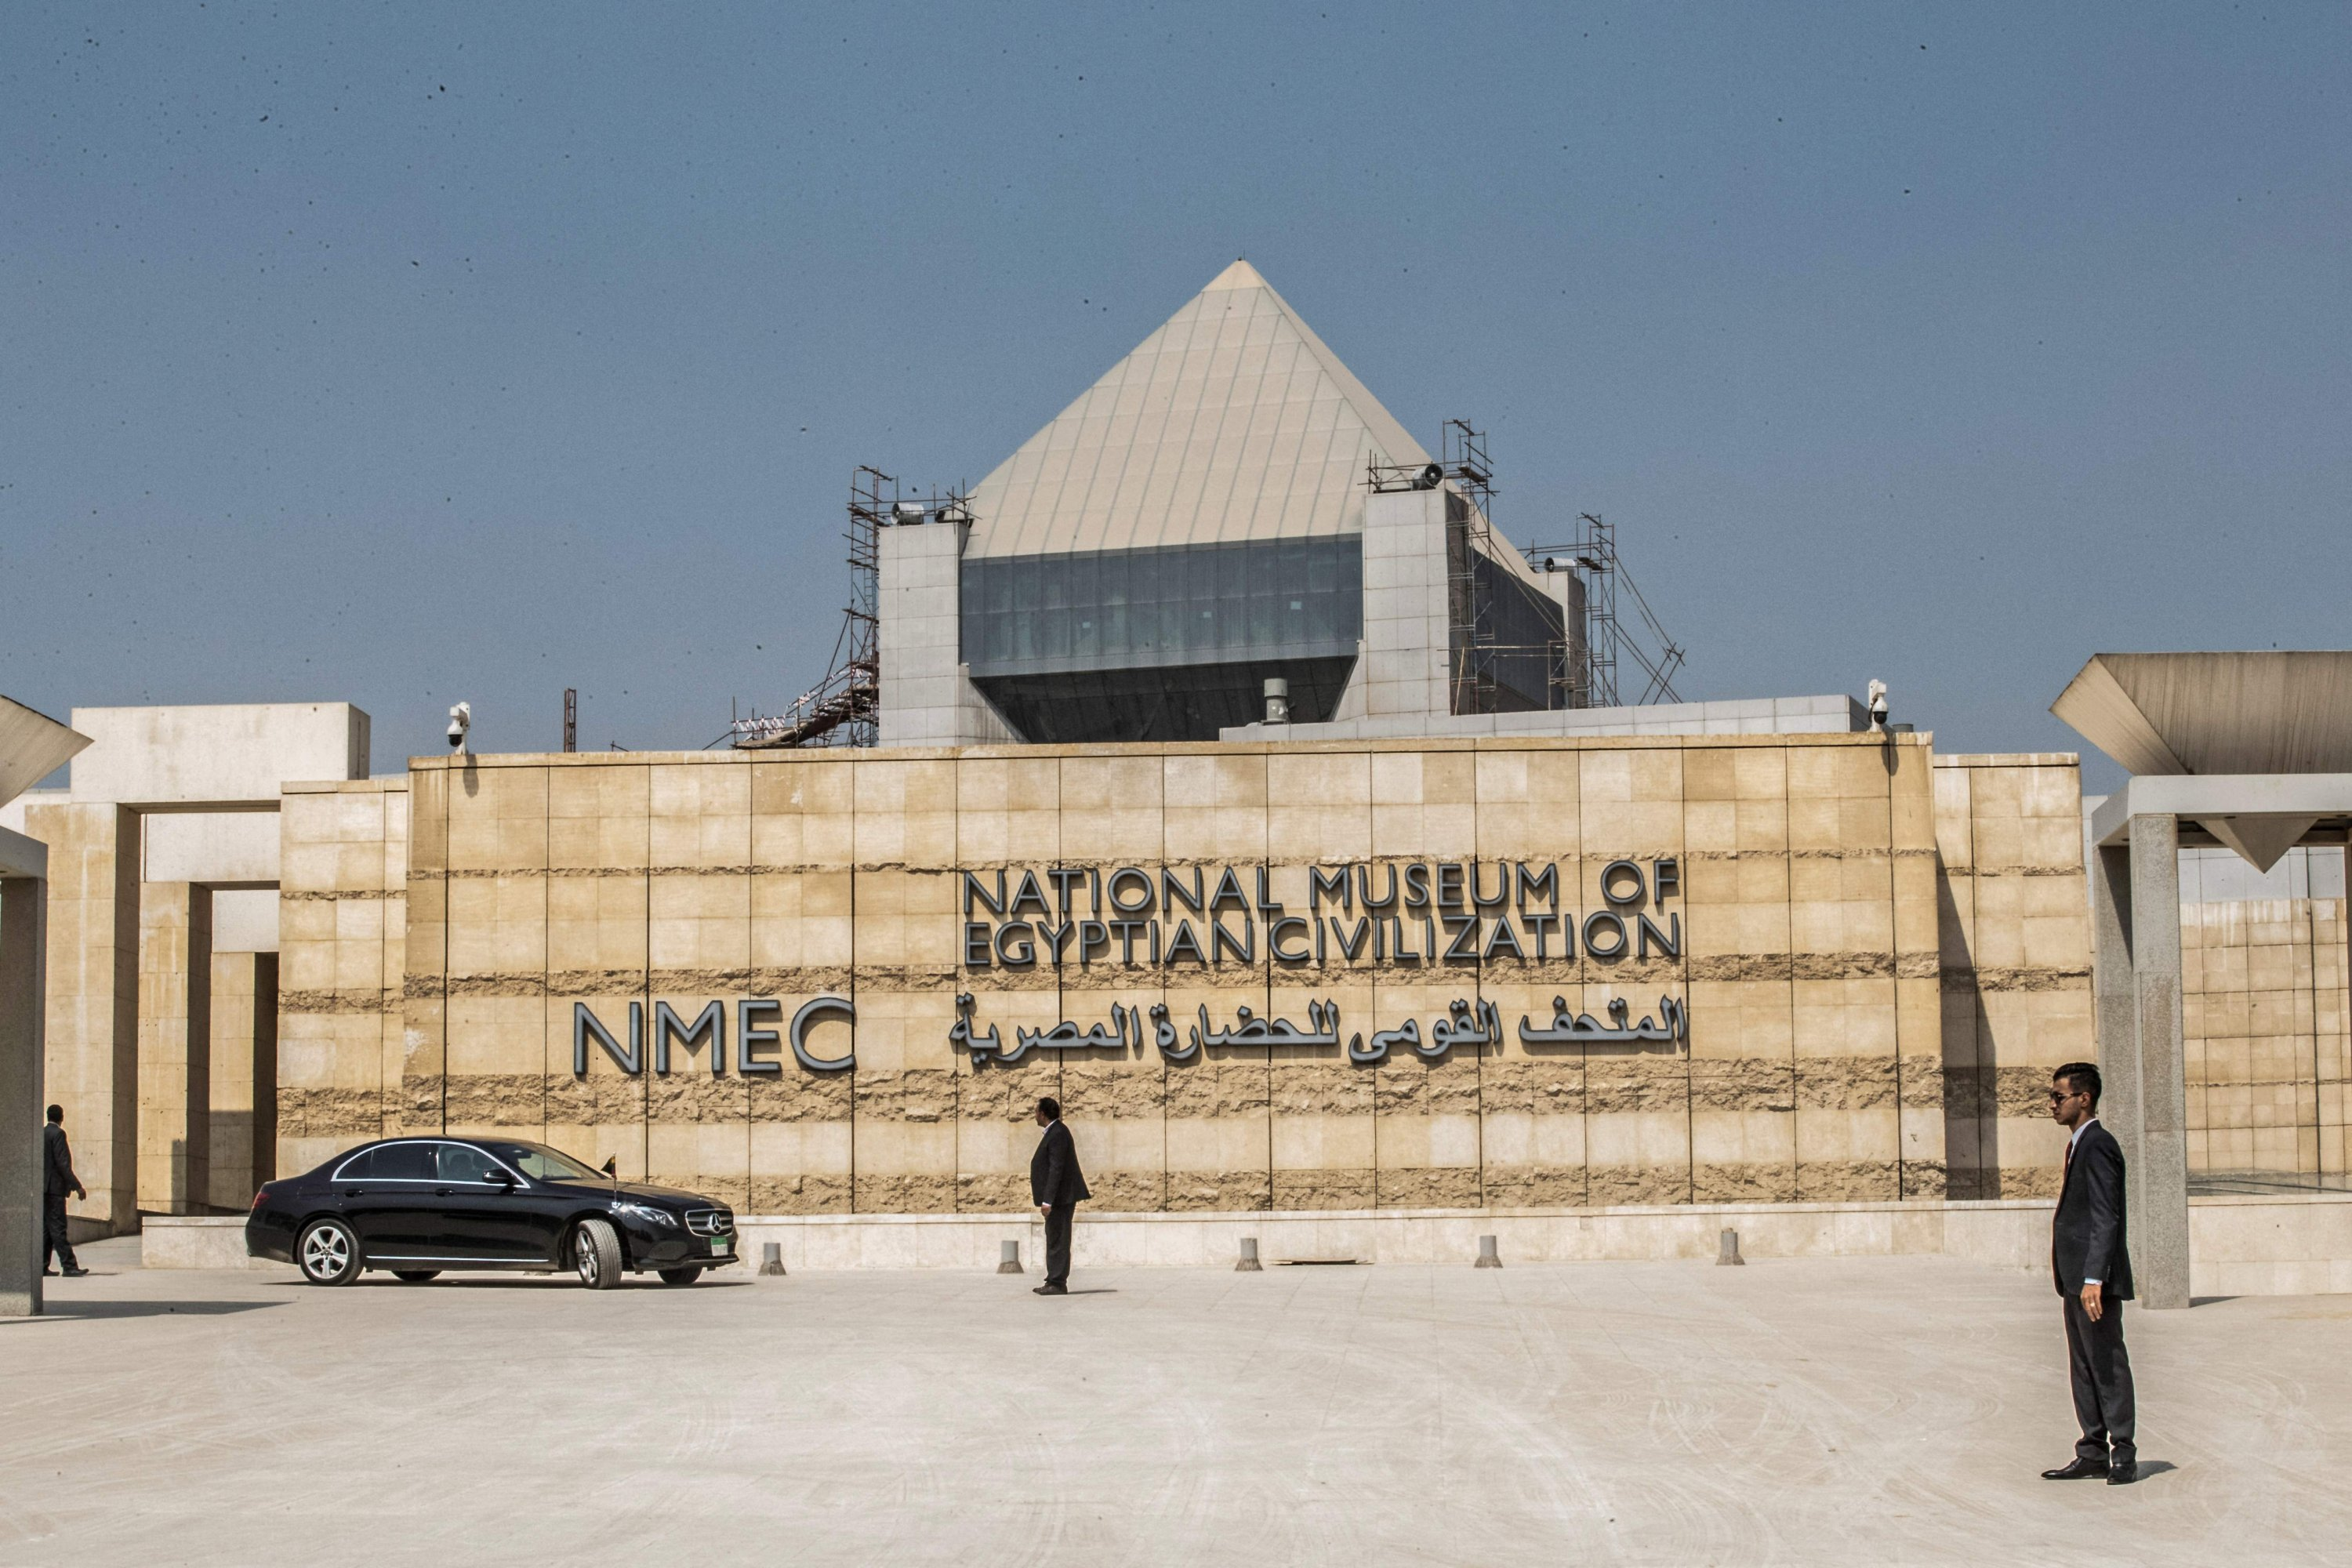 The entrance to the National Museum of Egyptian Civilization in Cairo, Egypt, Oct. 1, 2019. (Photo by Khaled DESOUKI / AFP)